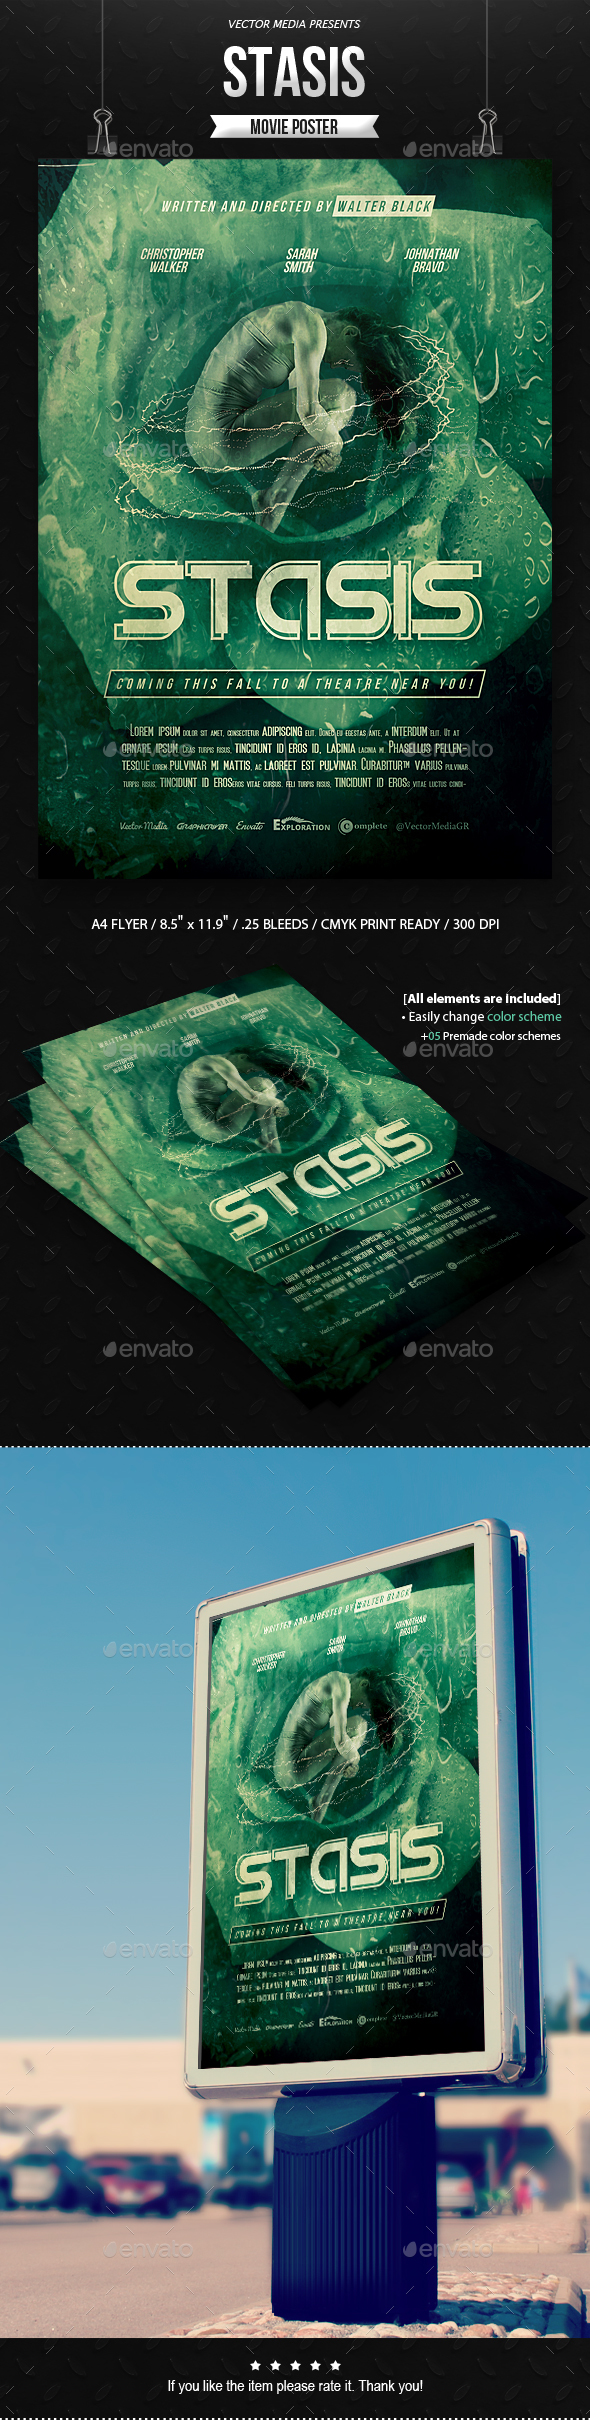 Stasis - Movie Poster - Miscellaneous Events